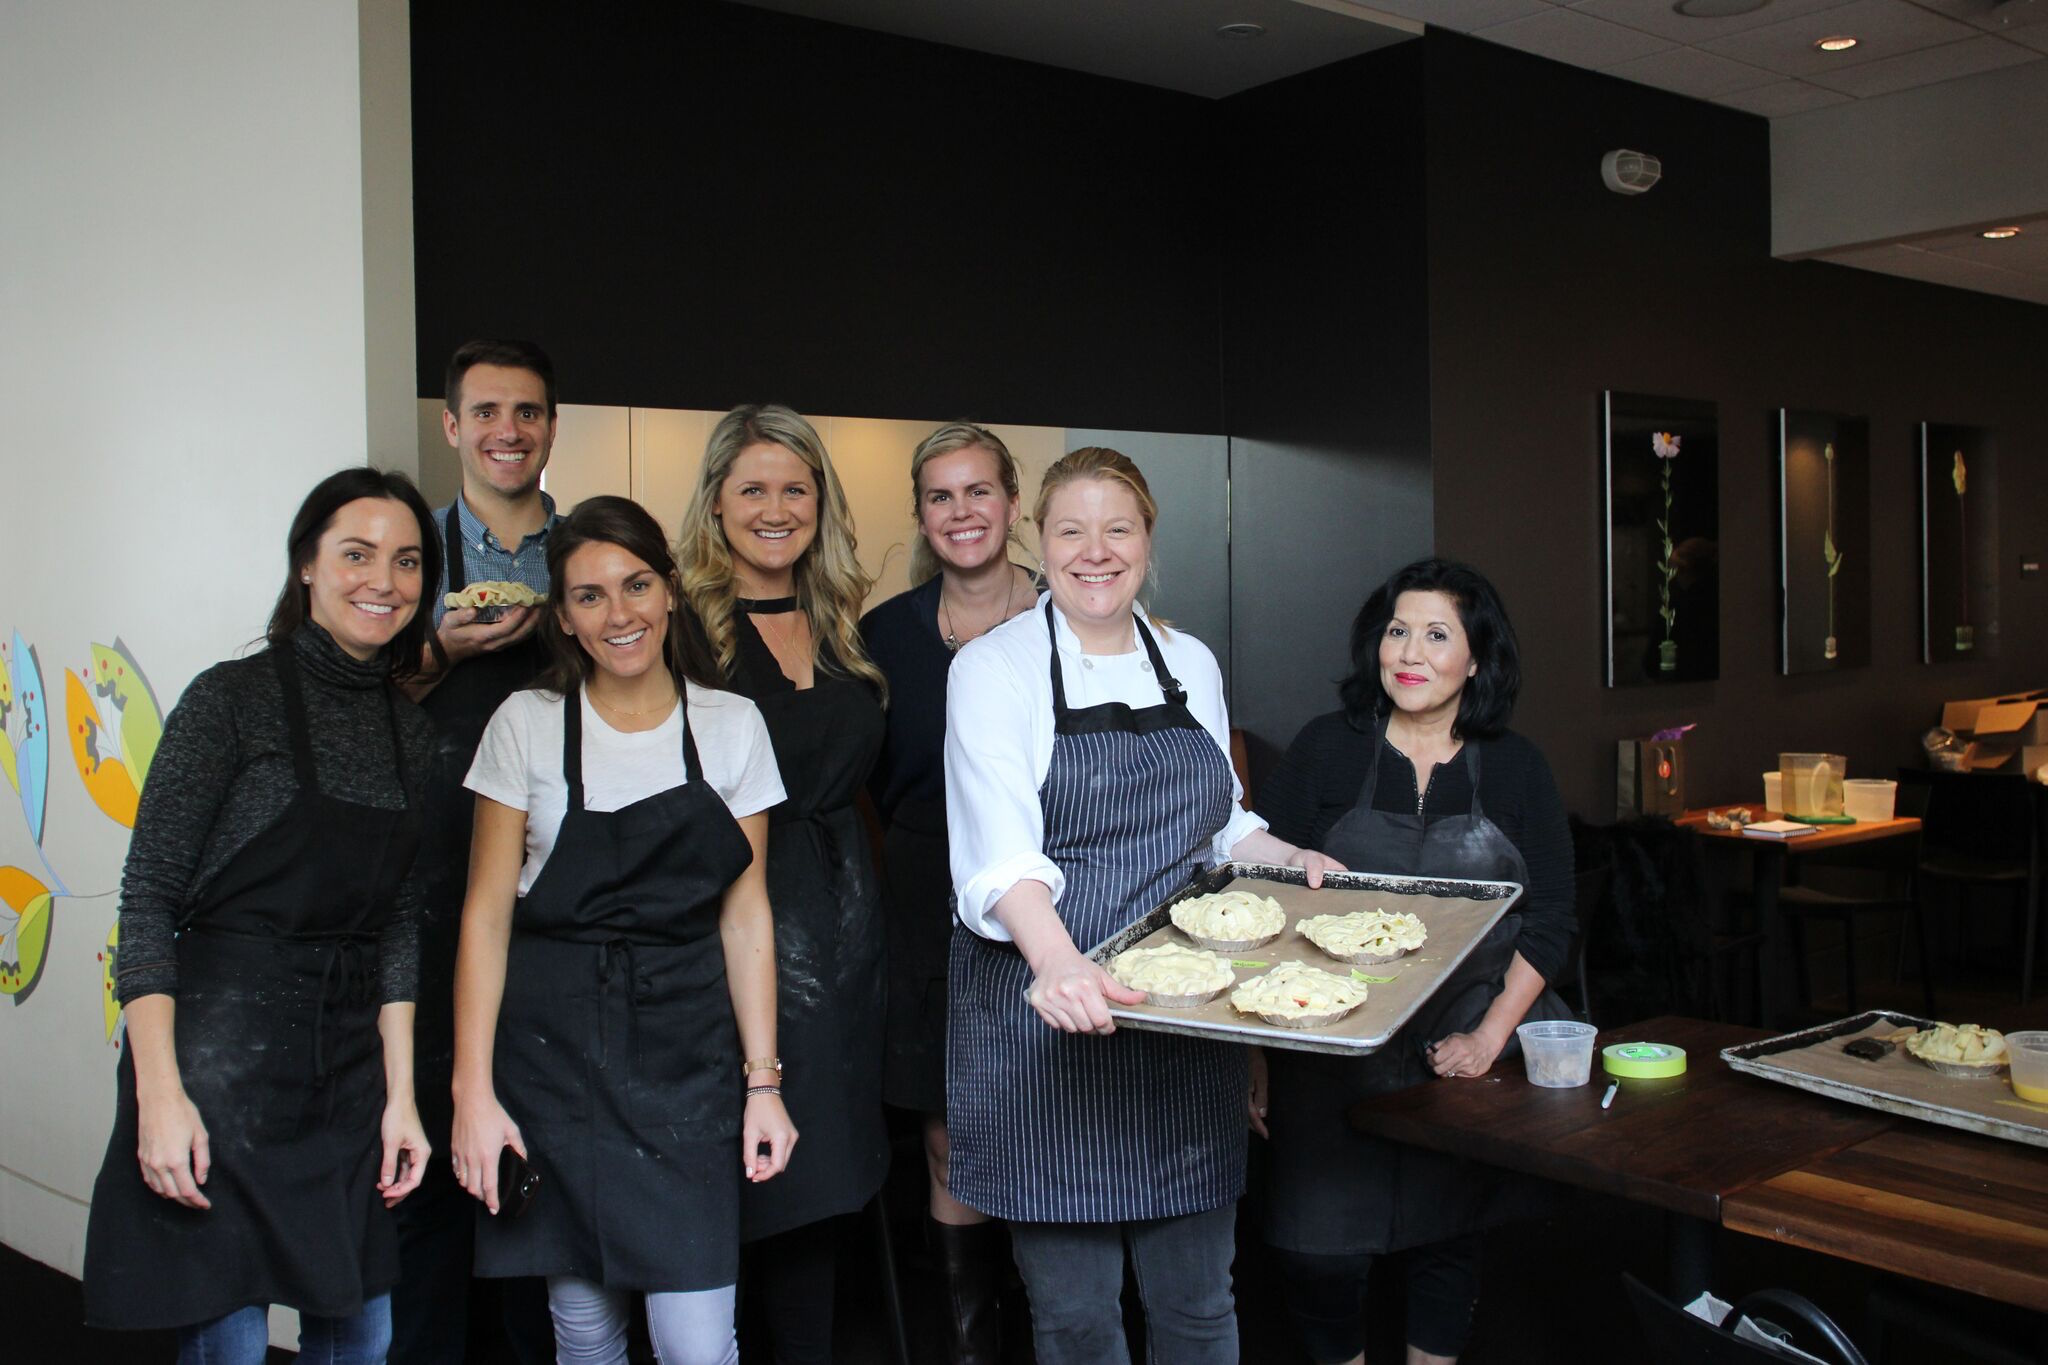 Lori Baker, holding the tray, surrounded by her students at a pie making class